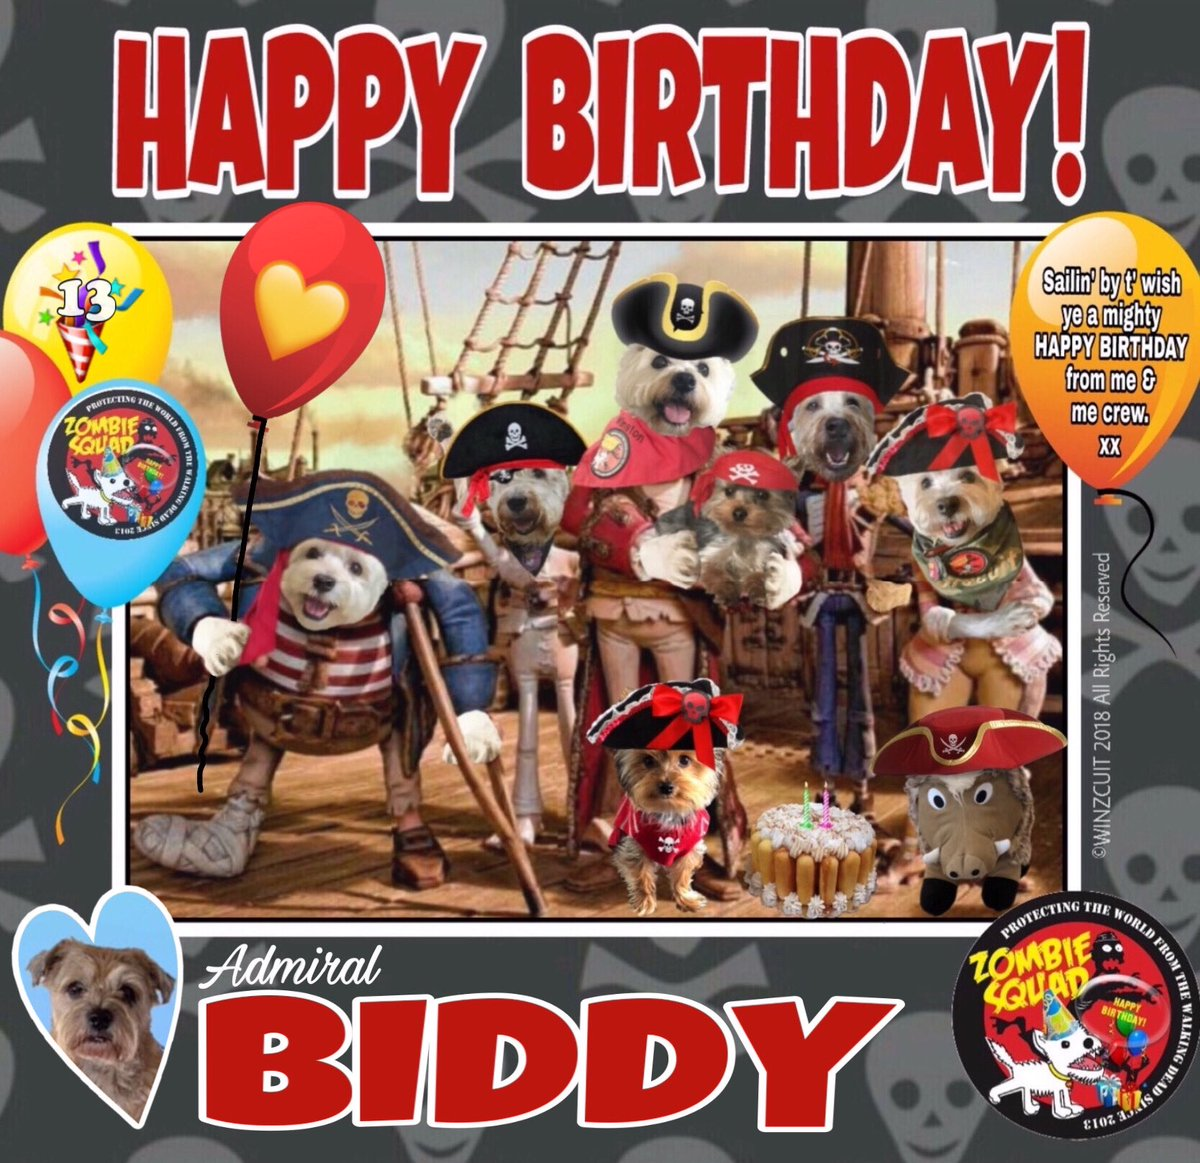 🎂Wishing a very 🎁HAPPY 13th BIRTHDAY🎉 to our pawtastic pal & Head of ZS Training, ADMIRAL BIDDY from Leada Billy & your ZombieSquad pals.   We hope your special day is full of tasty treats, belly rubs & cayke,  very dear pal. 💜🎂🎁🎉 @LordBiddy @MadSCWT @ZombieSquadHQ #ZSHQ https://t.co/8wFgffVyaV